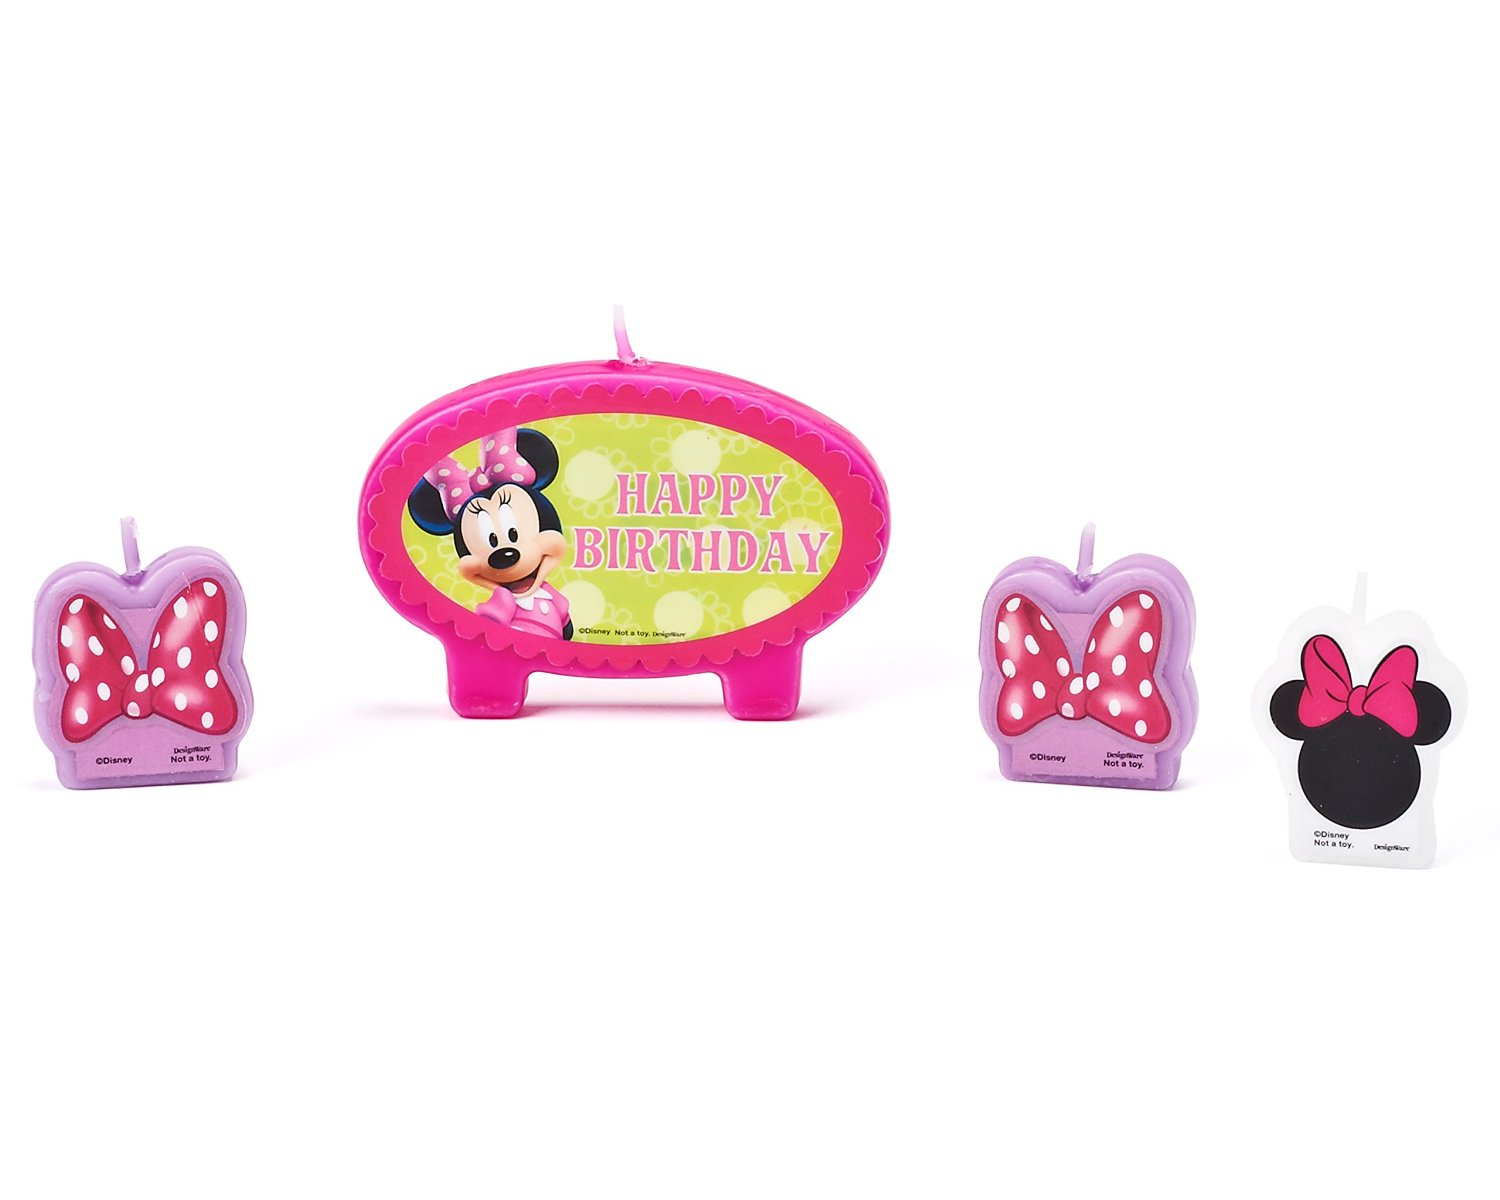 Minnie Mouse Bowtique Birthday Candles, 4 Count, Party Supplies